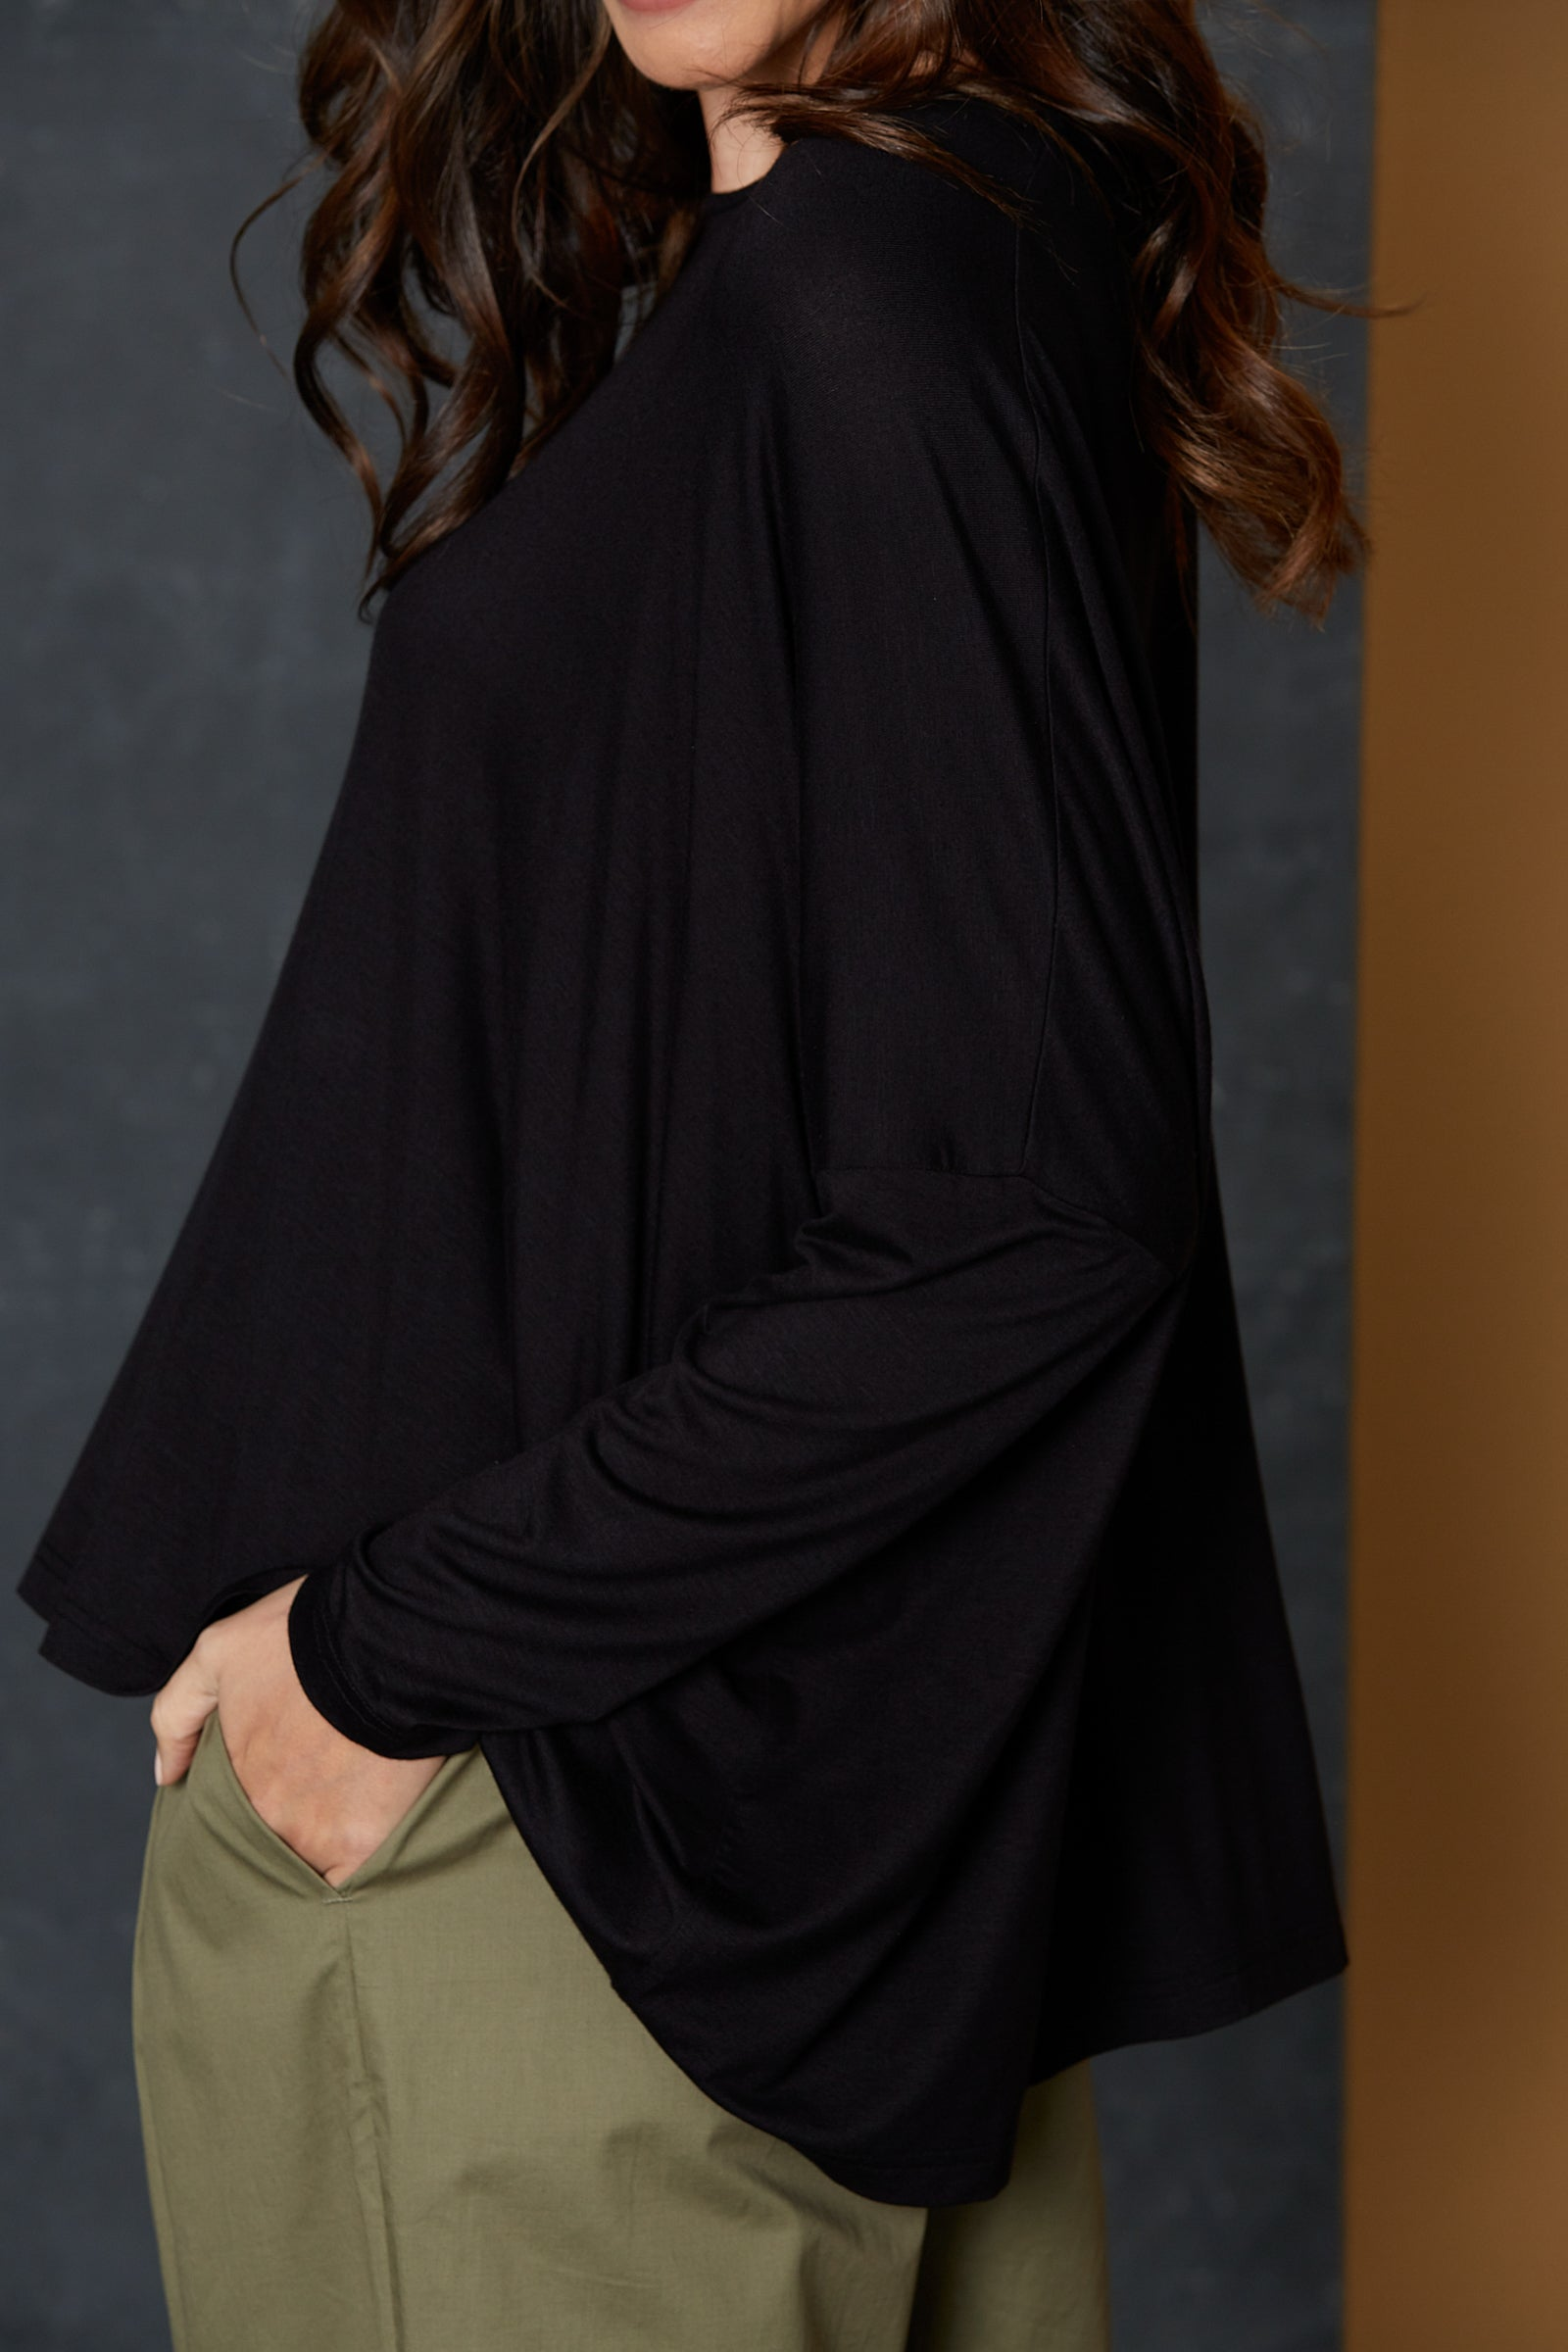 Muse Top - Black - eb&ive Clothing - Top L/S One Size